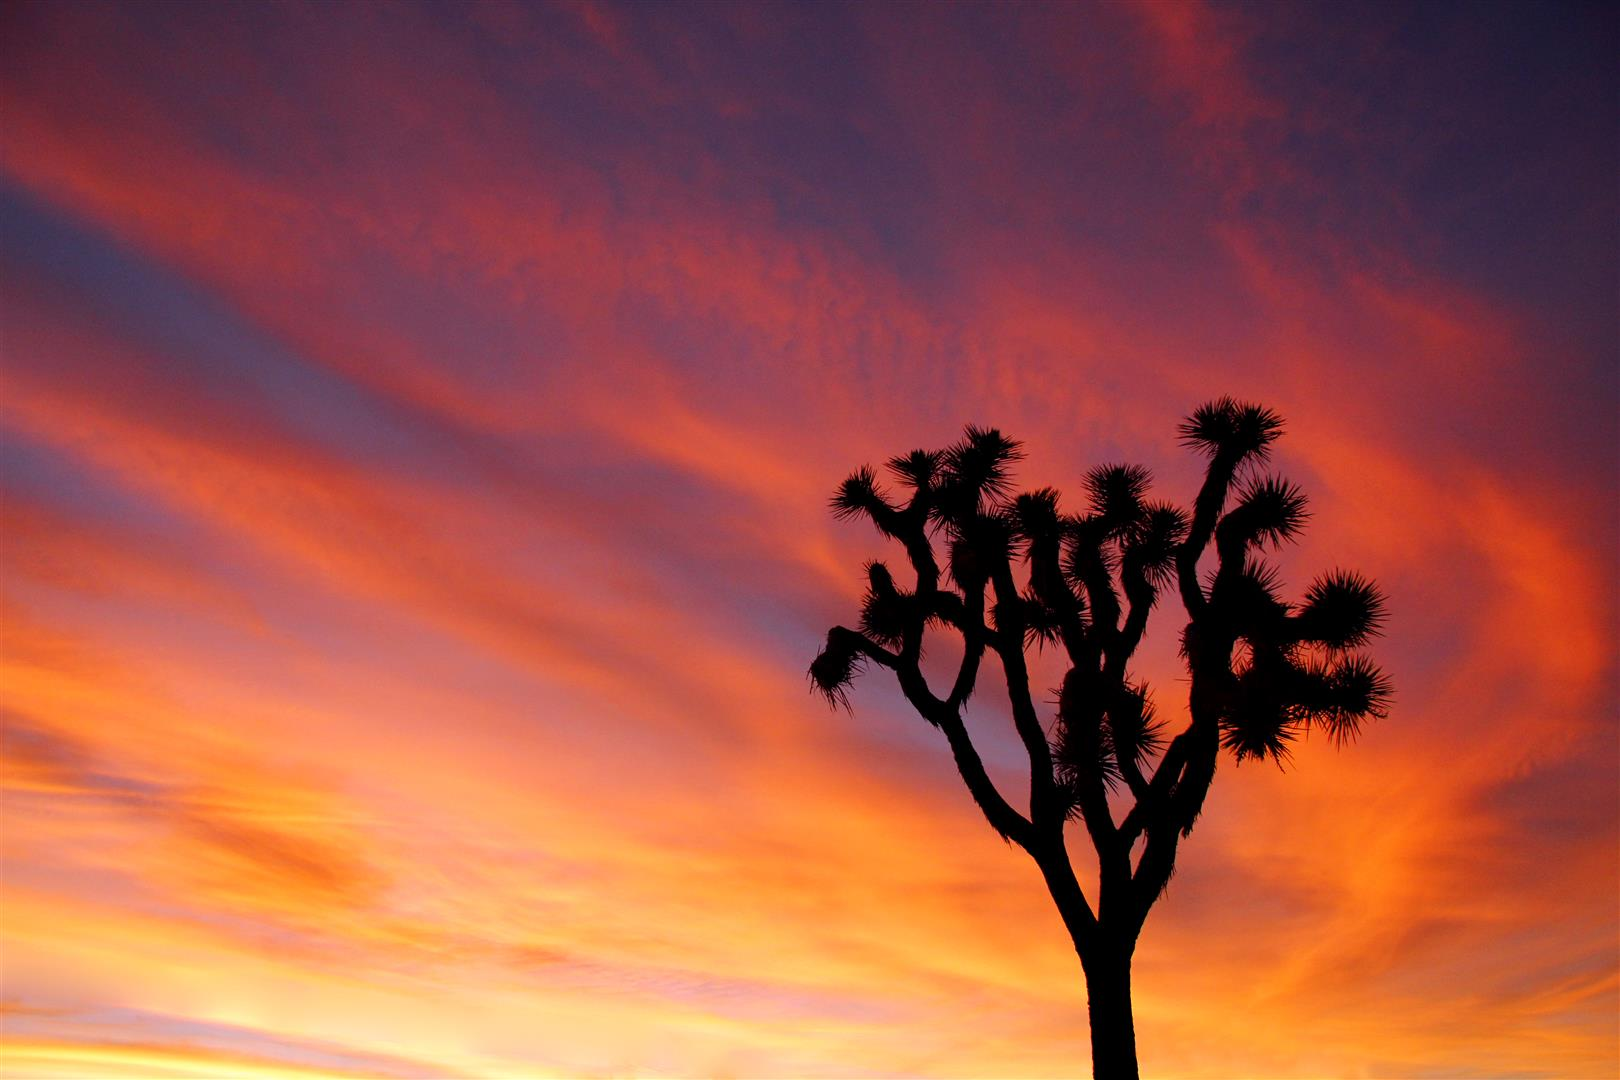 The wide-open desert of Joshua Tree National Park makes for stunning sunsets. The Mormon pioneers who named the trees saw their limbs as Joshua's arms, being raised in supplication and guiding them ever-westward. Photo by Brad Sutton, courtesy NPS.